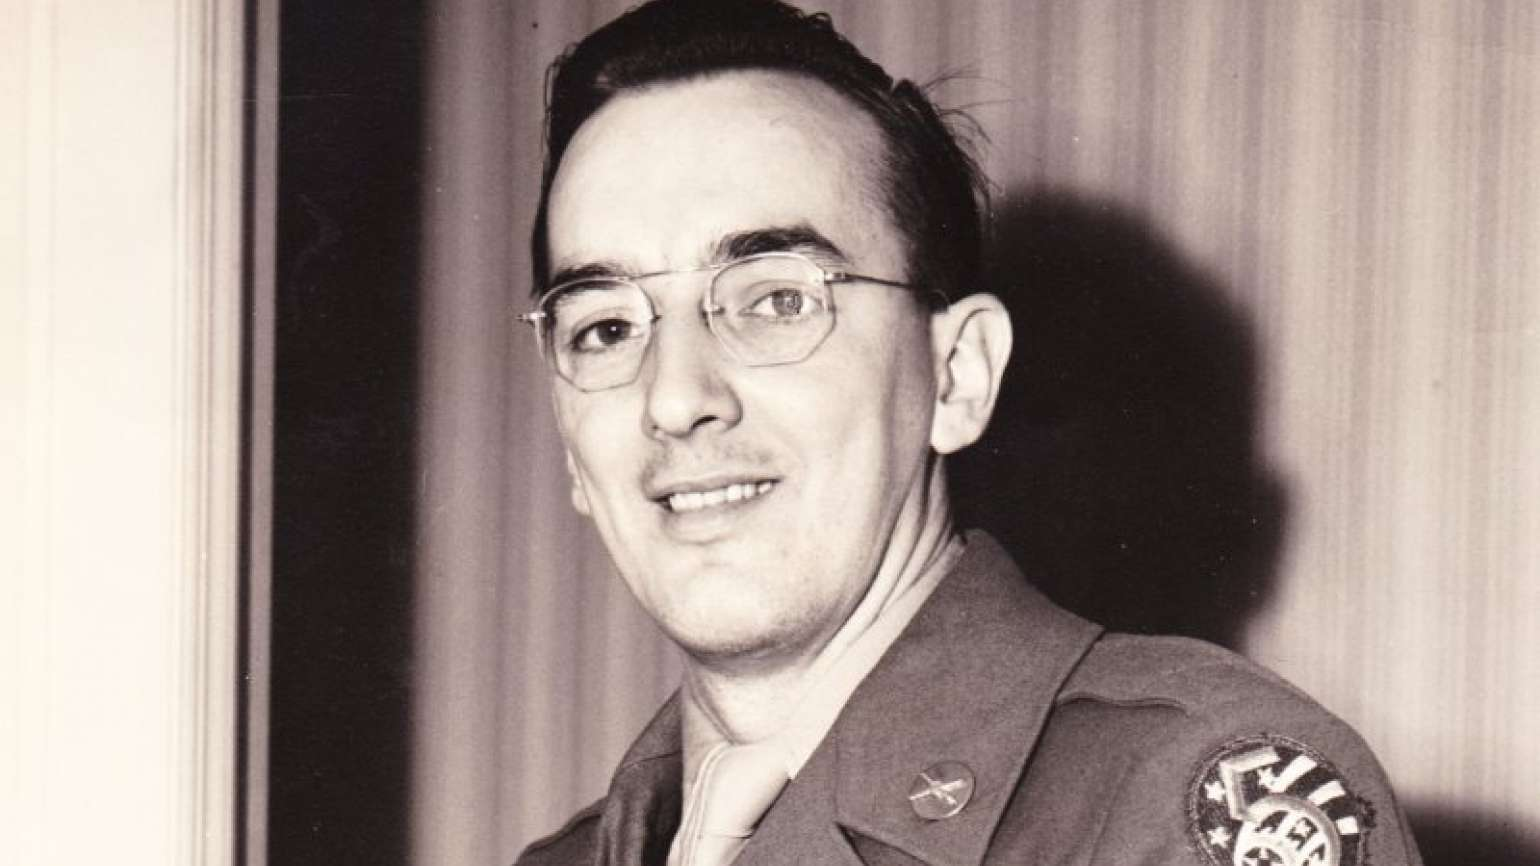 James Creamer - The Mysterious Voice That Saved a Soldier